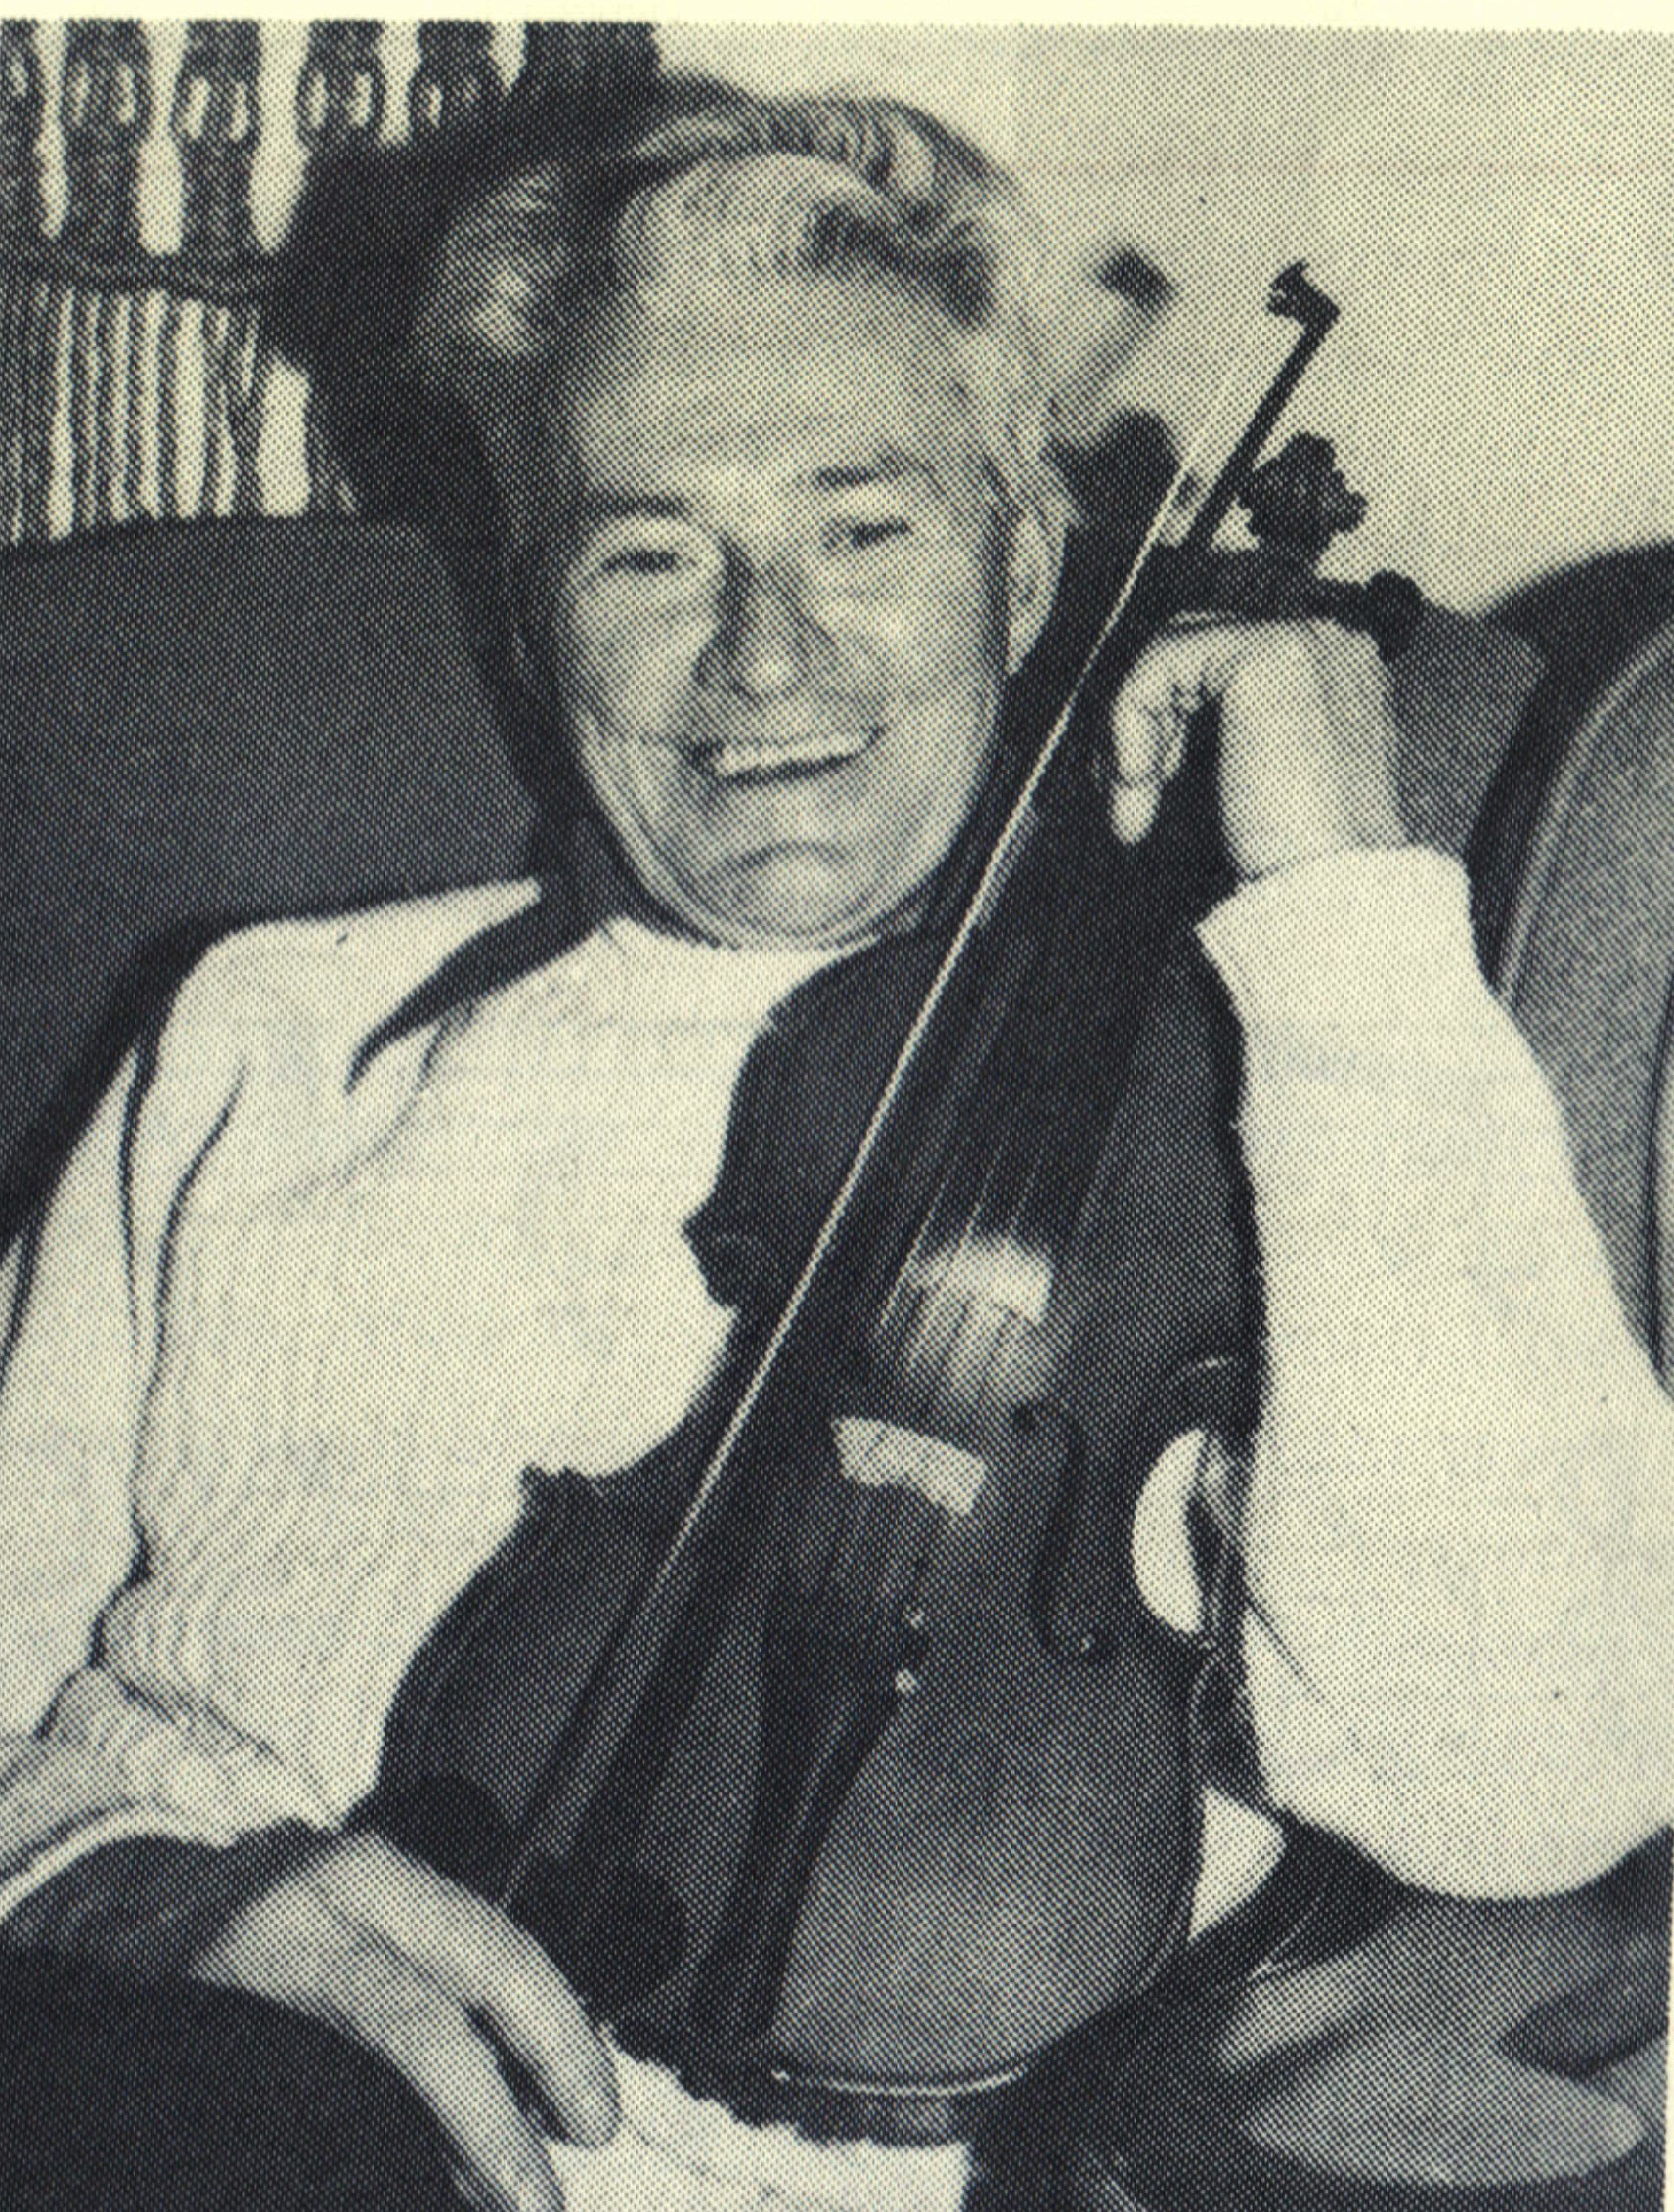 The Cape Breton Fiddler by Allister MacGillivray